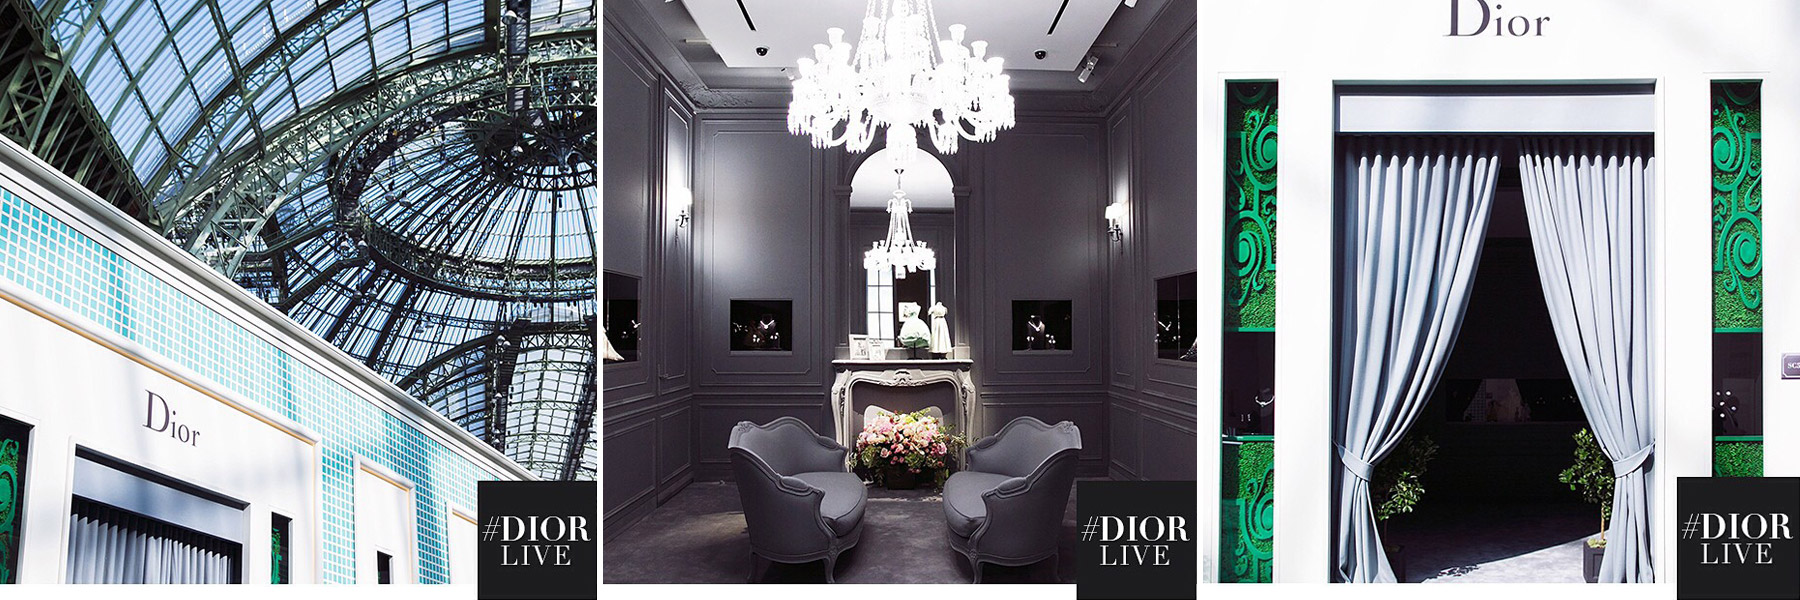 Dior by Carin Olsson (Paris in Four Months)